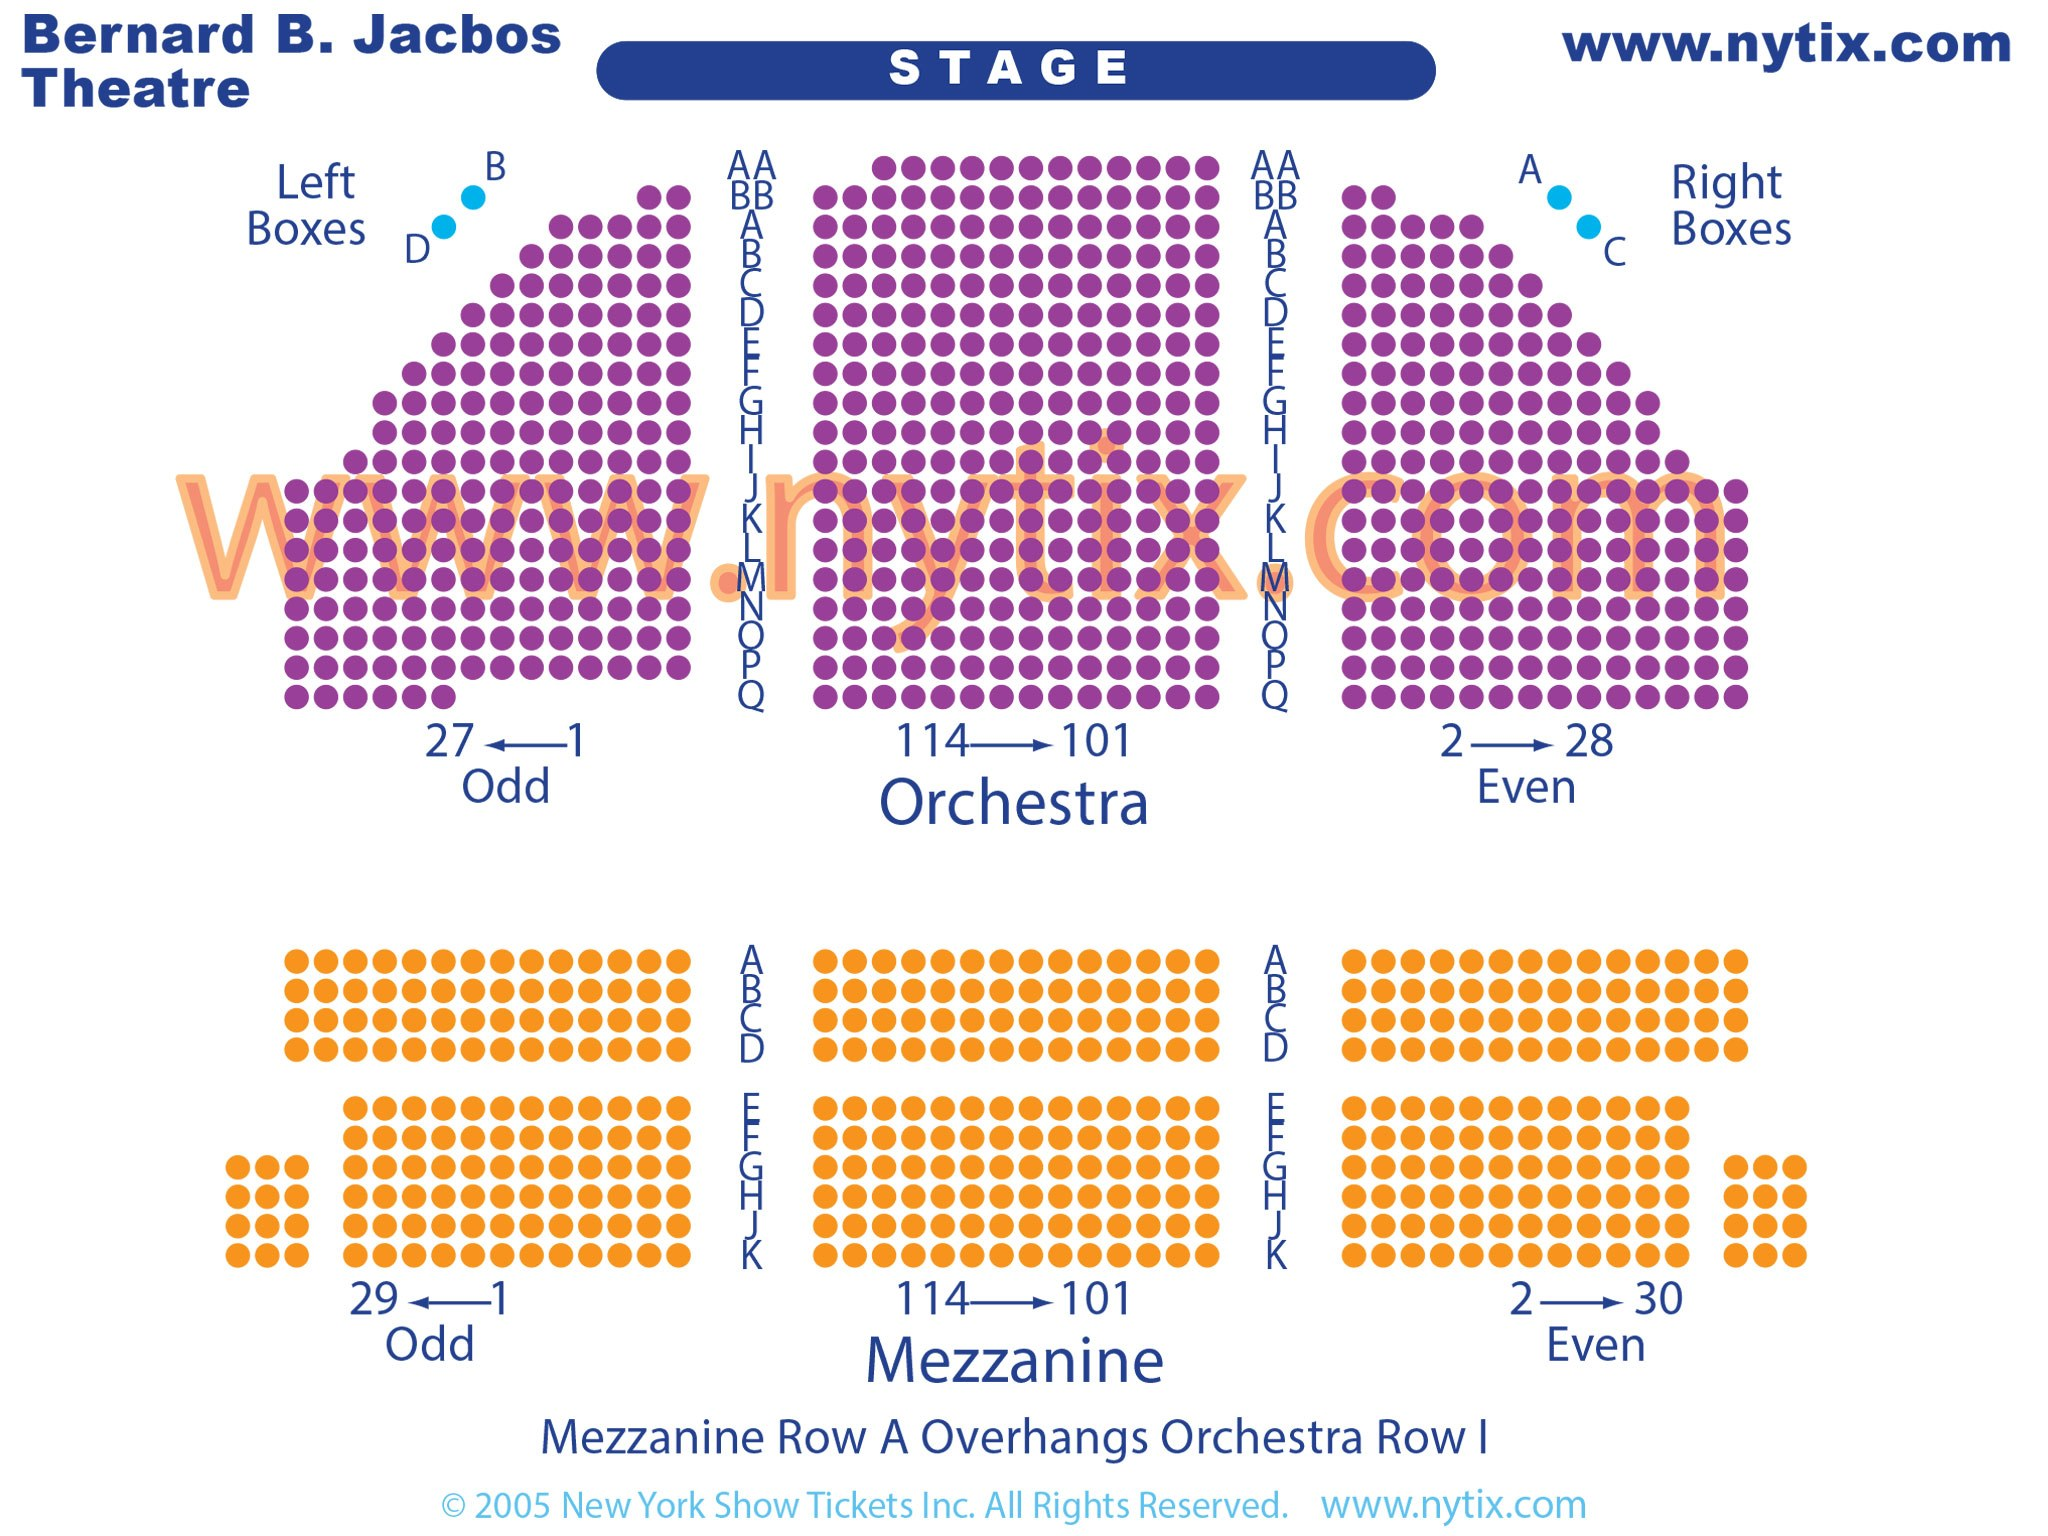 Bernard B Jacobs Theatre Seating Chart